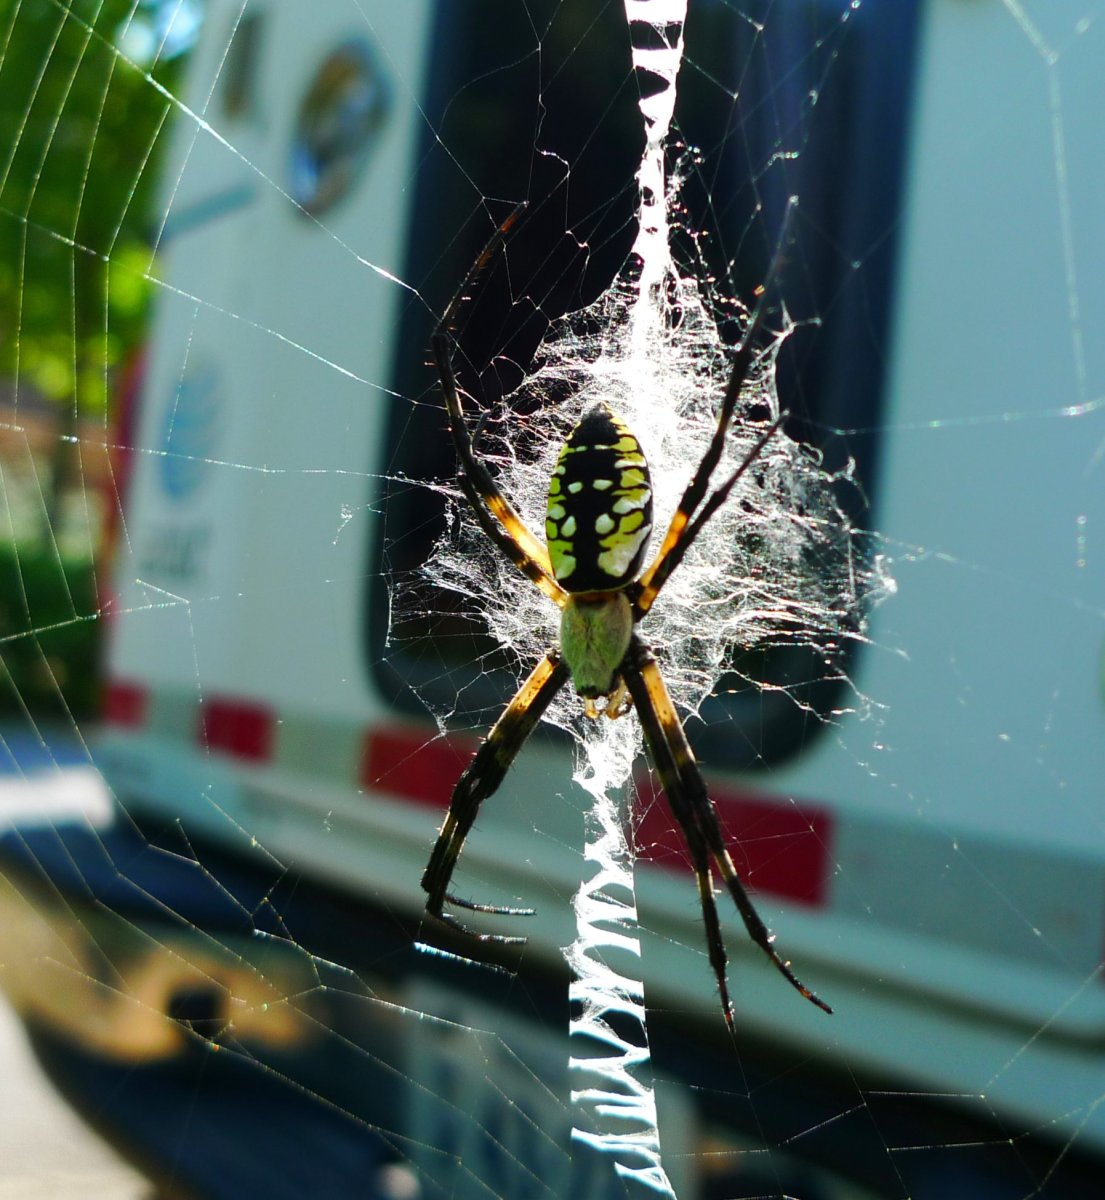 Carolina Writing Spiders are actually Golden Orb Weaver Spiders.